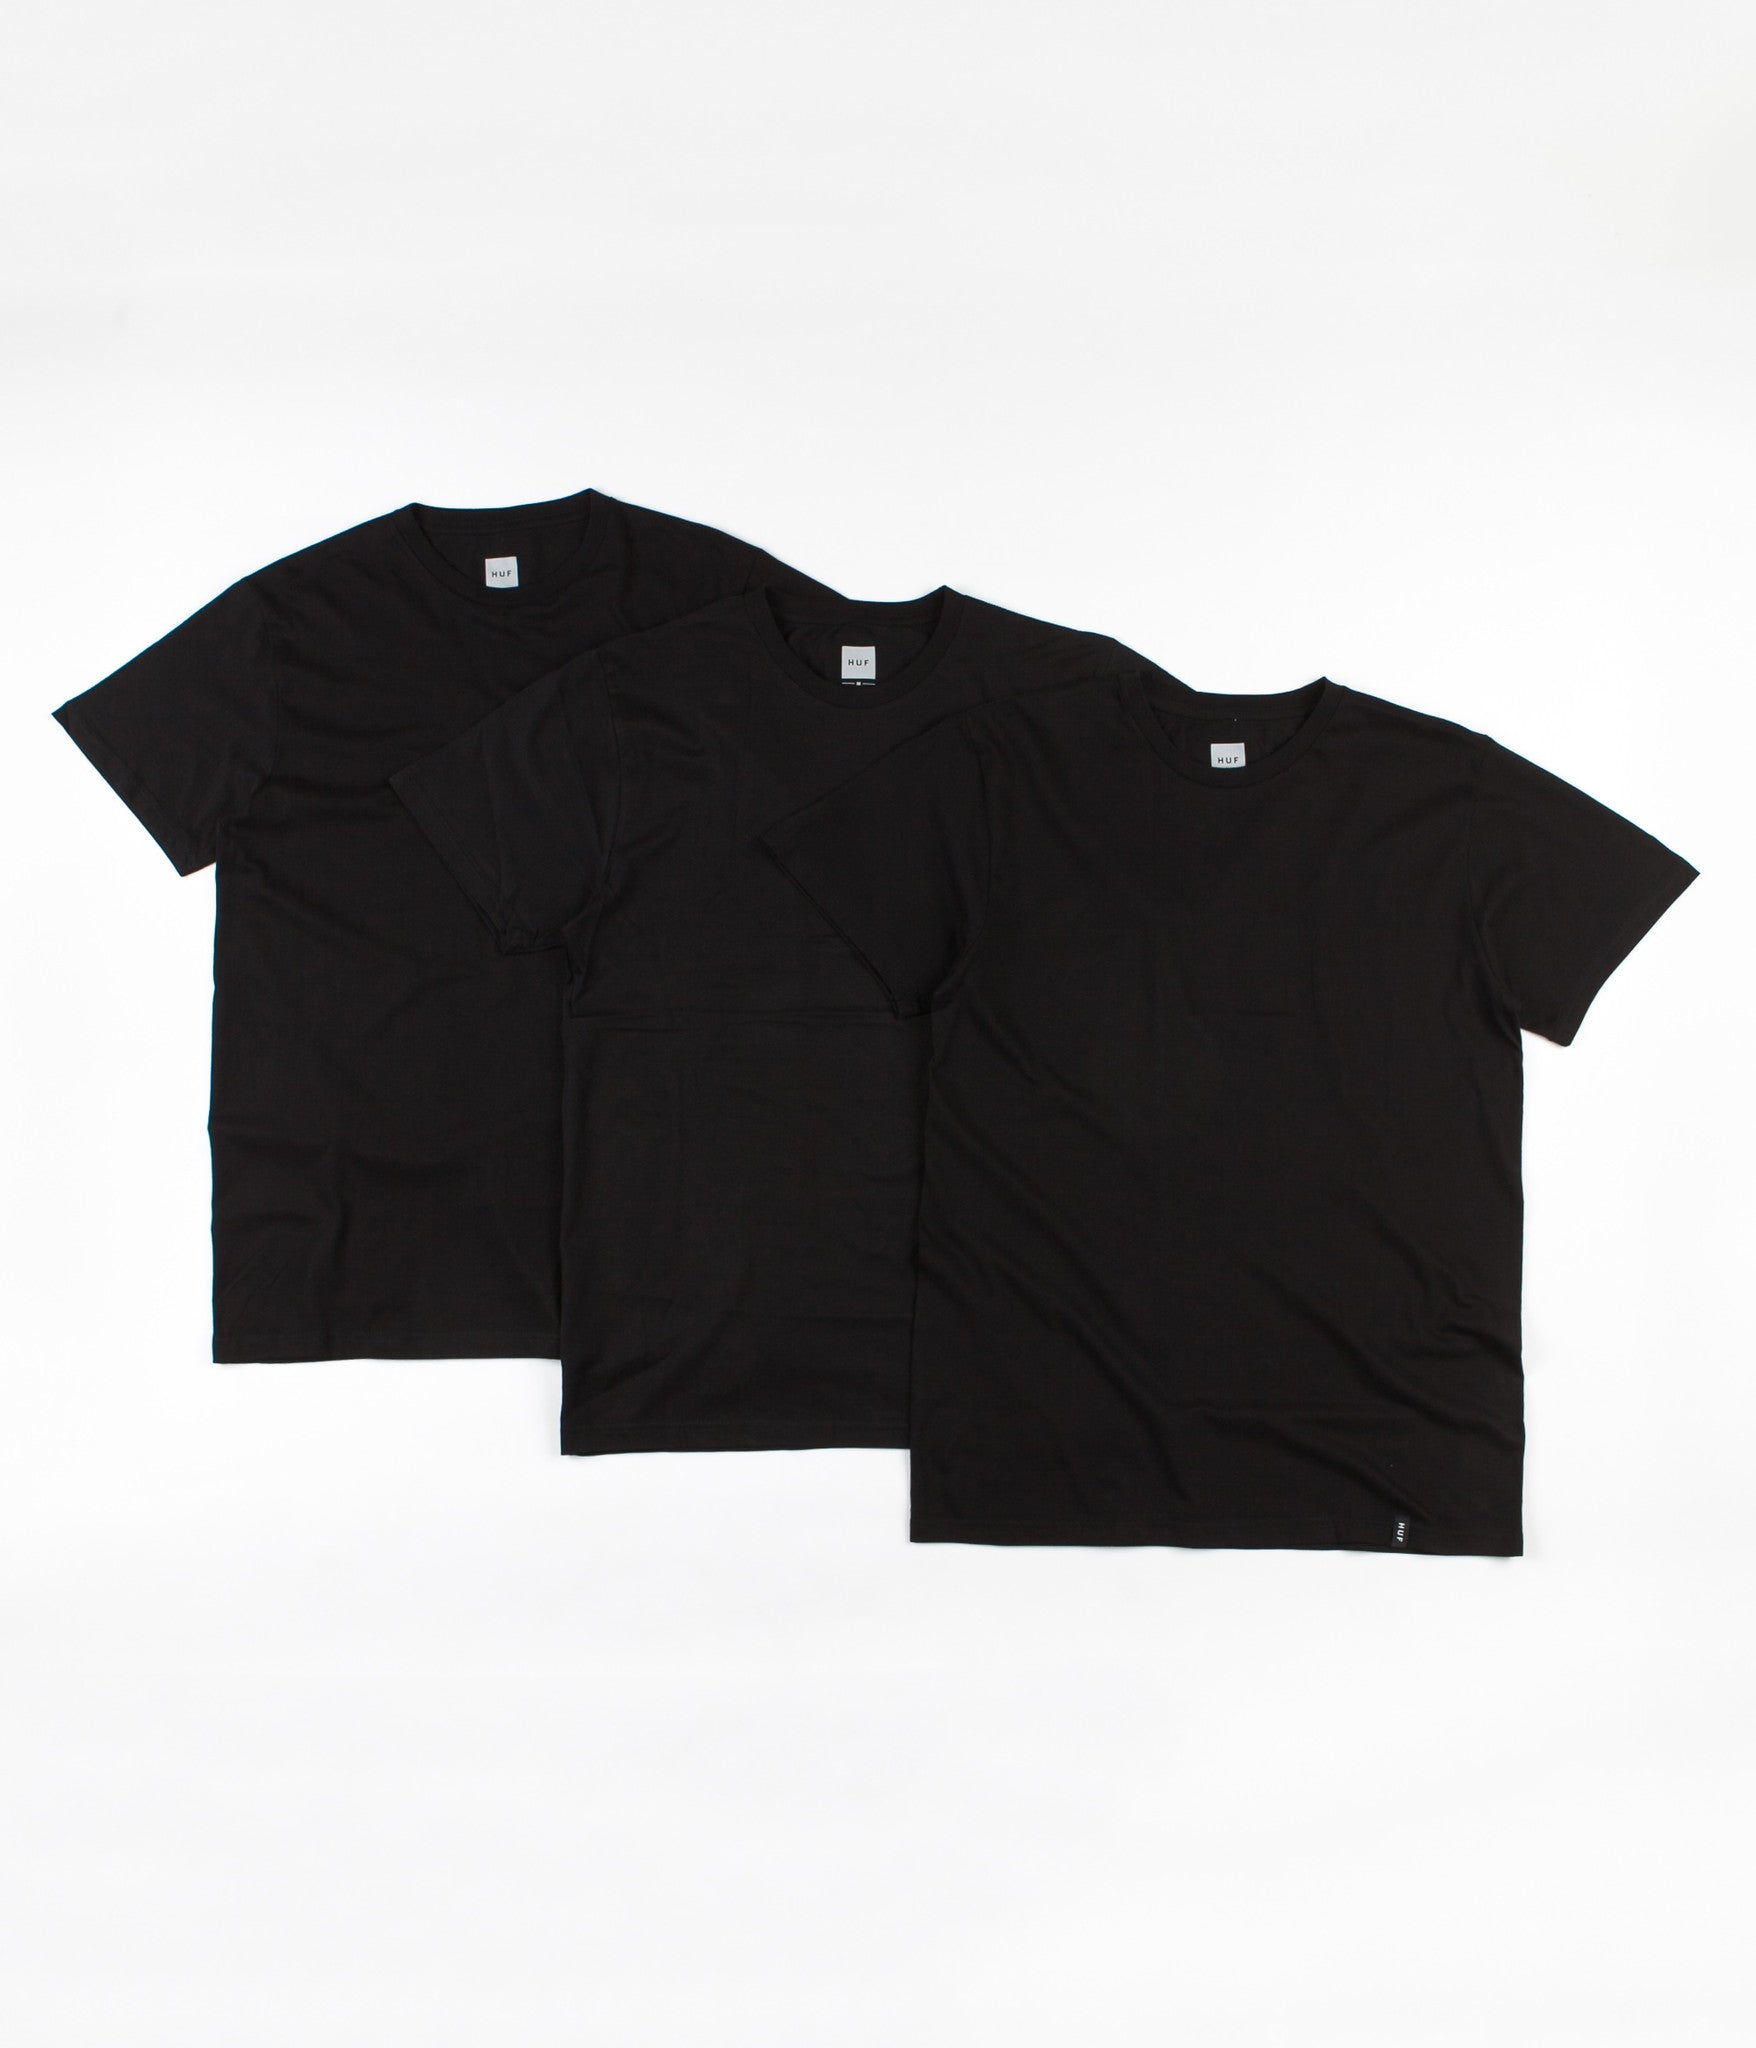 HUF T-Shirt Three Pack - Black